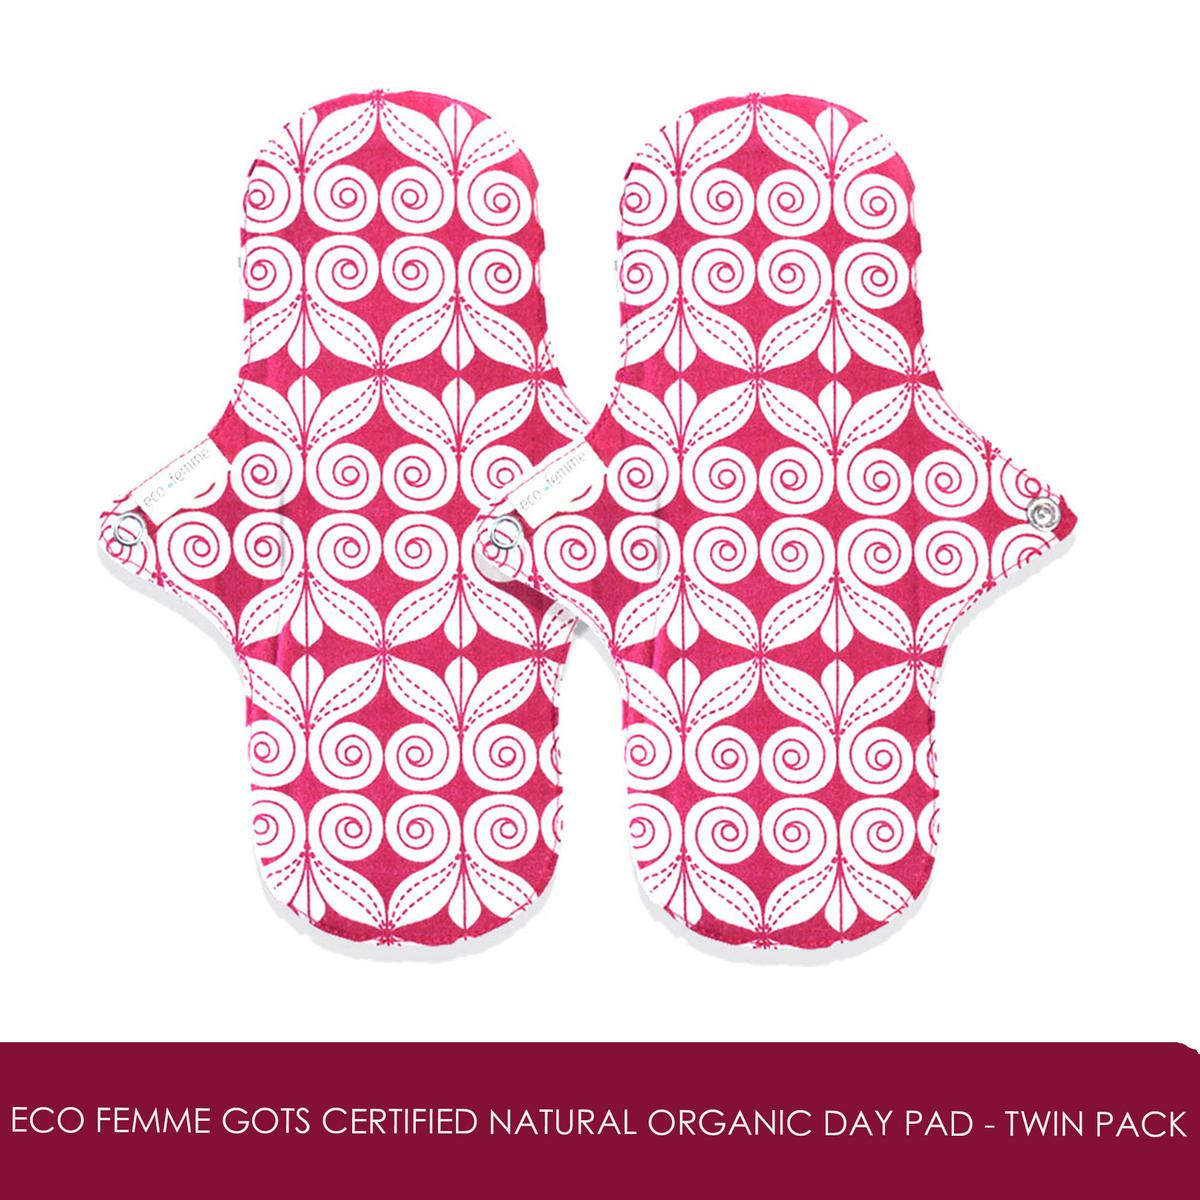 GOLI SODA - Eco Femme GOTS Certified Natural Organic Day Pad - Twin Pack